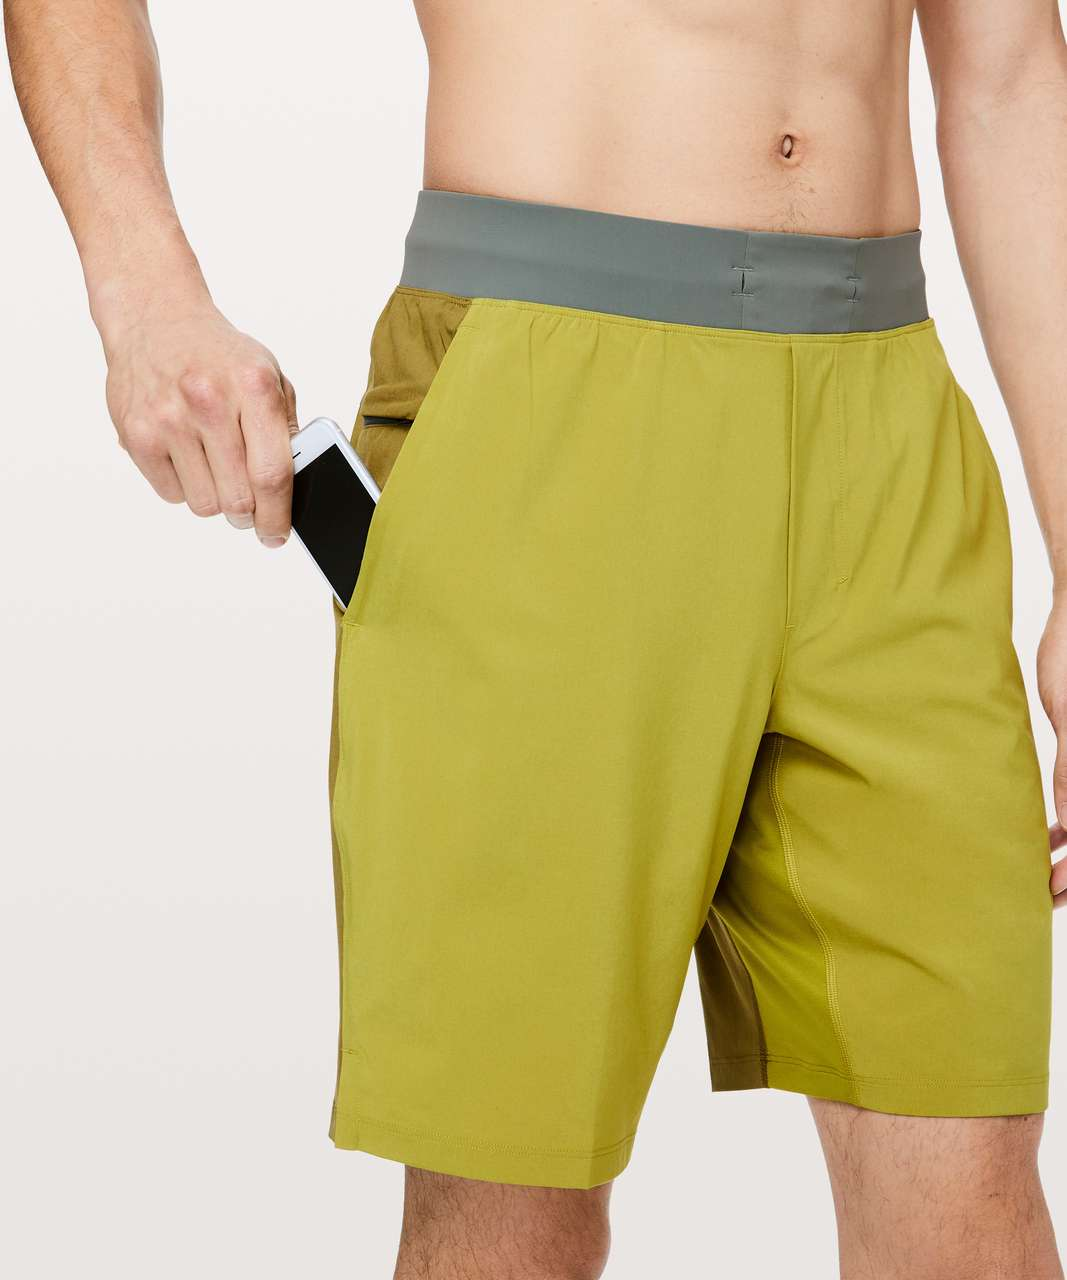 "Lululemon T.H.E. Short 9"" *Linerless - Golden Lime / Mossy / Grey Sage"